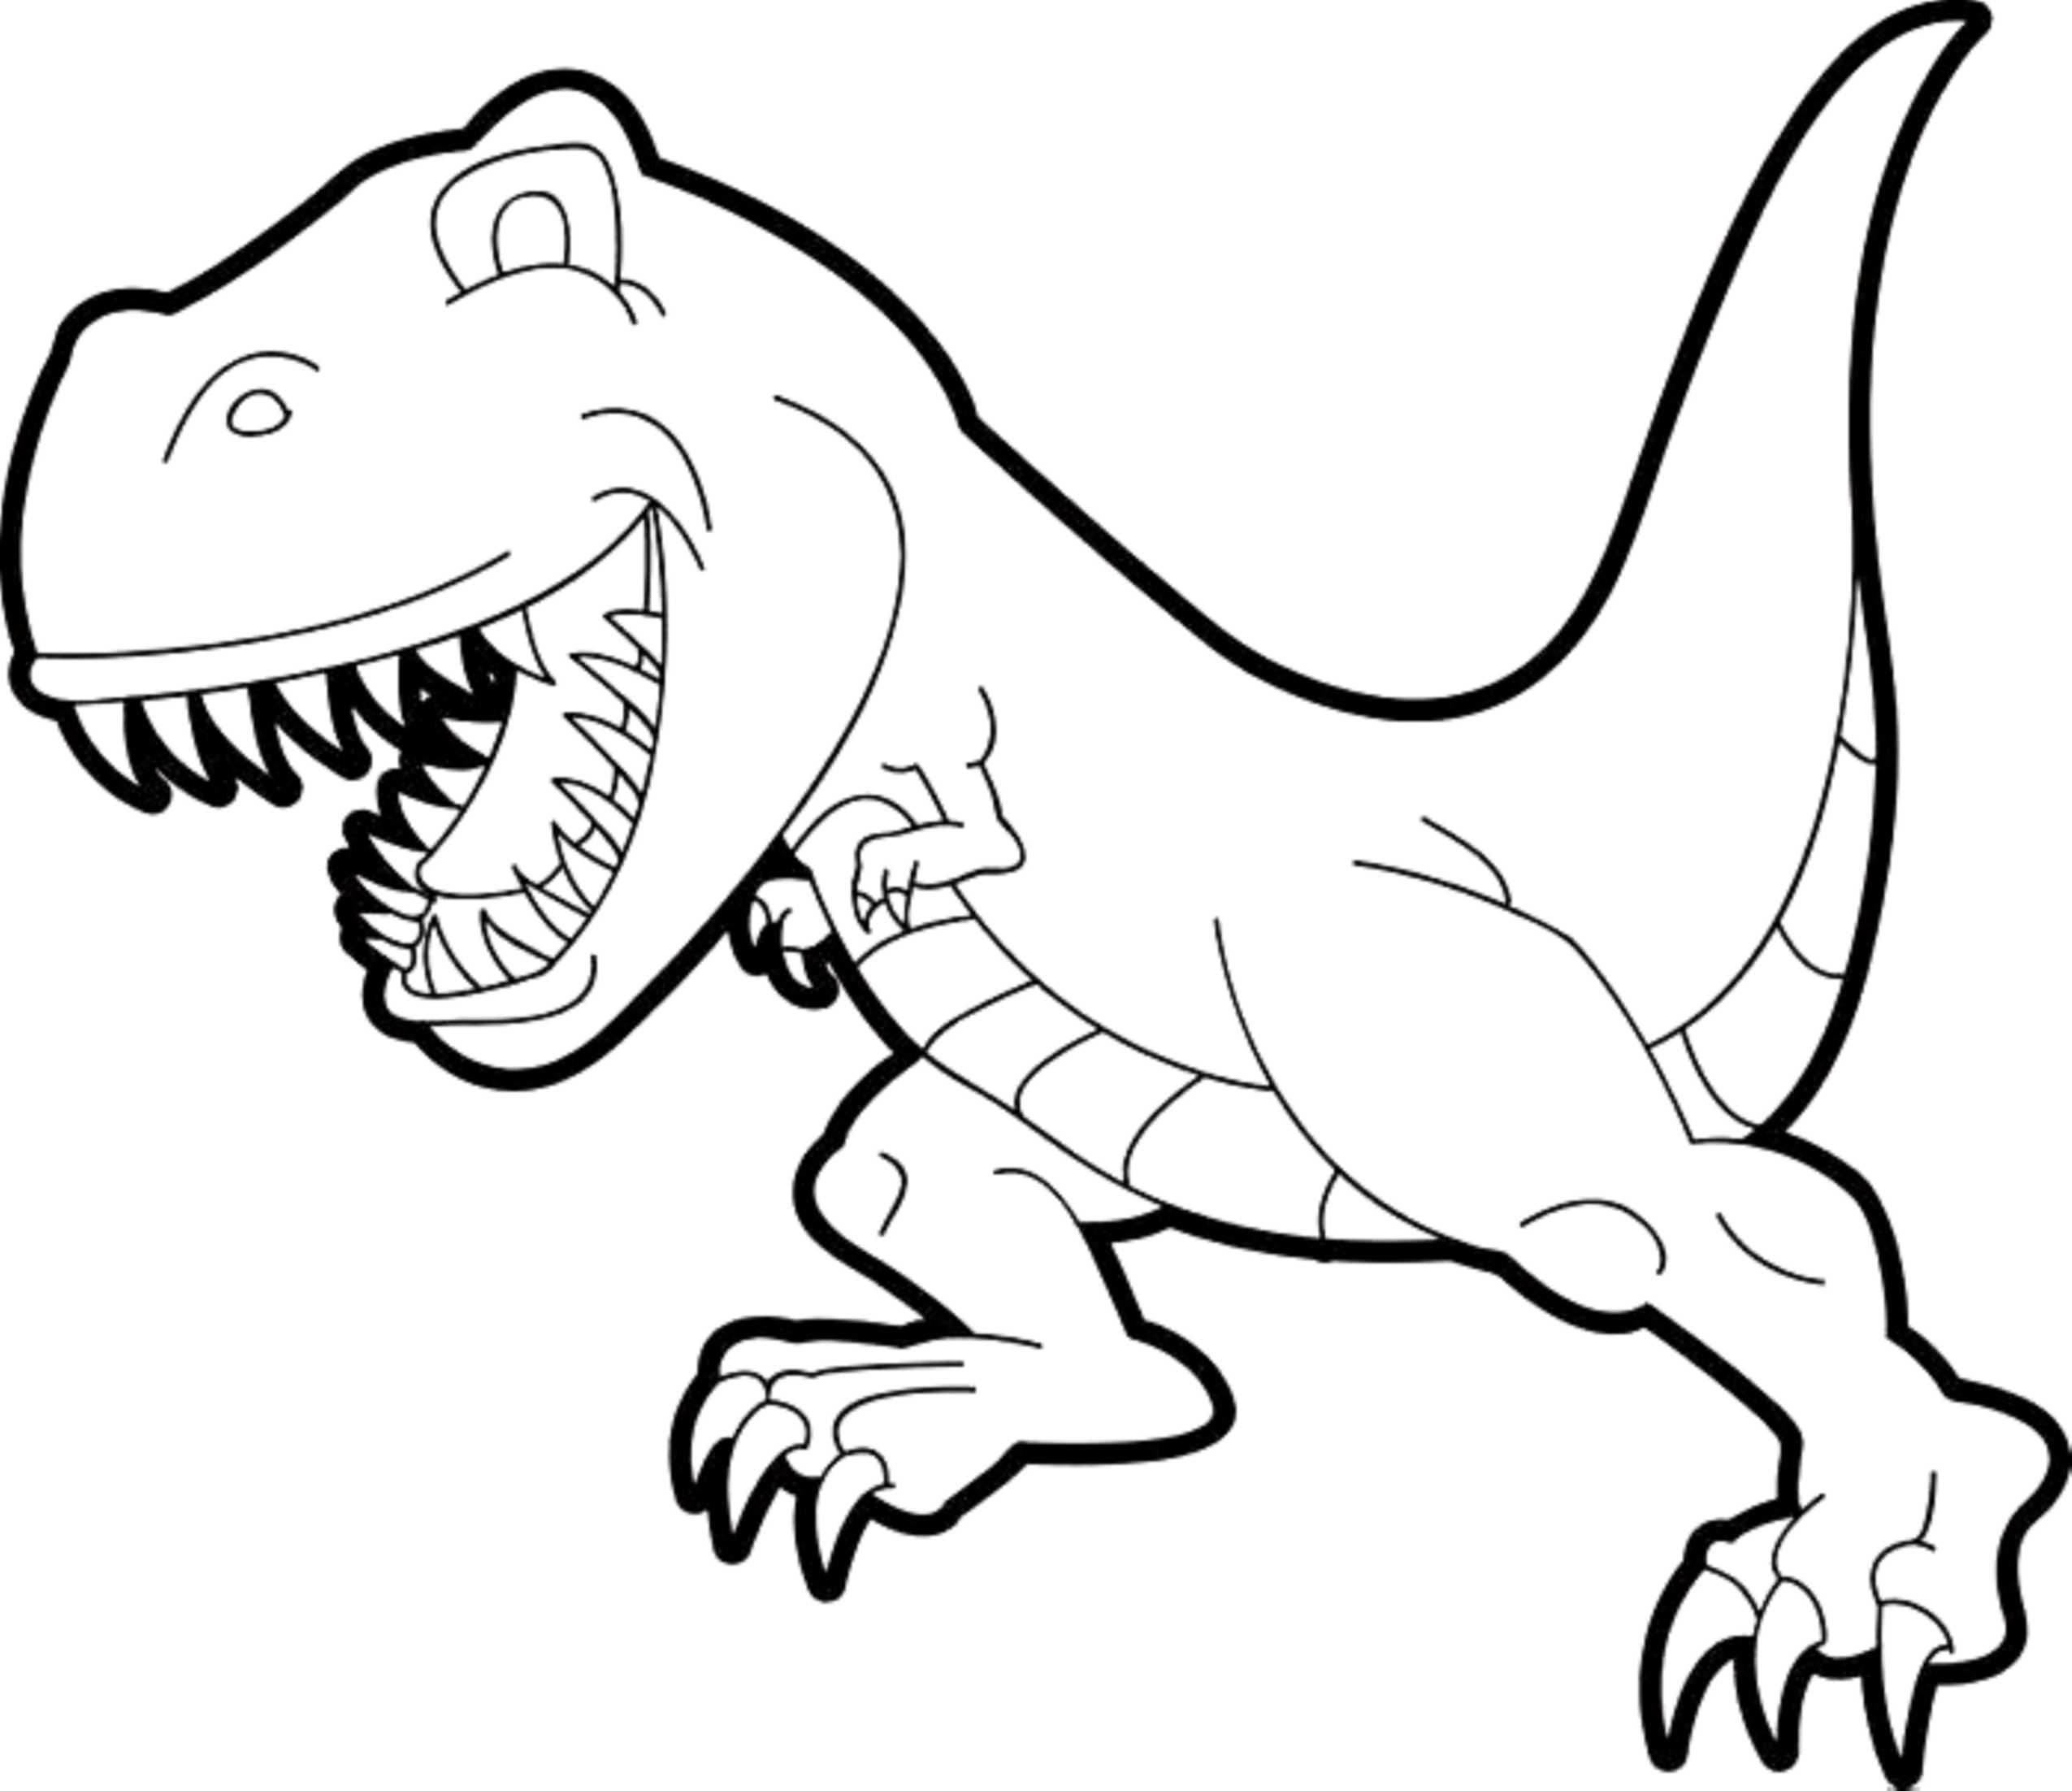 dinosaurs colouring pages dinosaur t rex coloring pages coloring home colouring dinosaurs pages